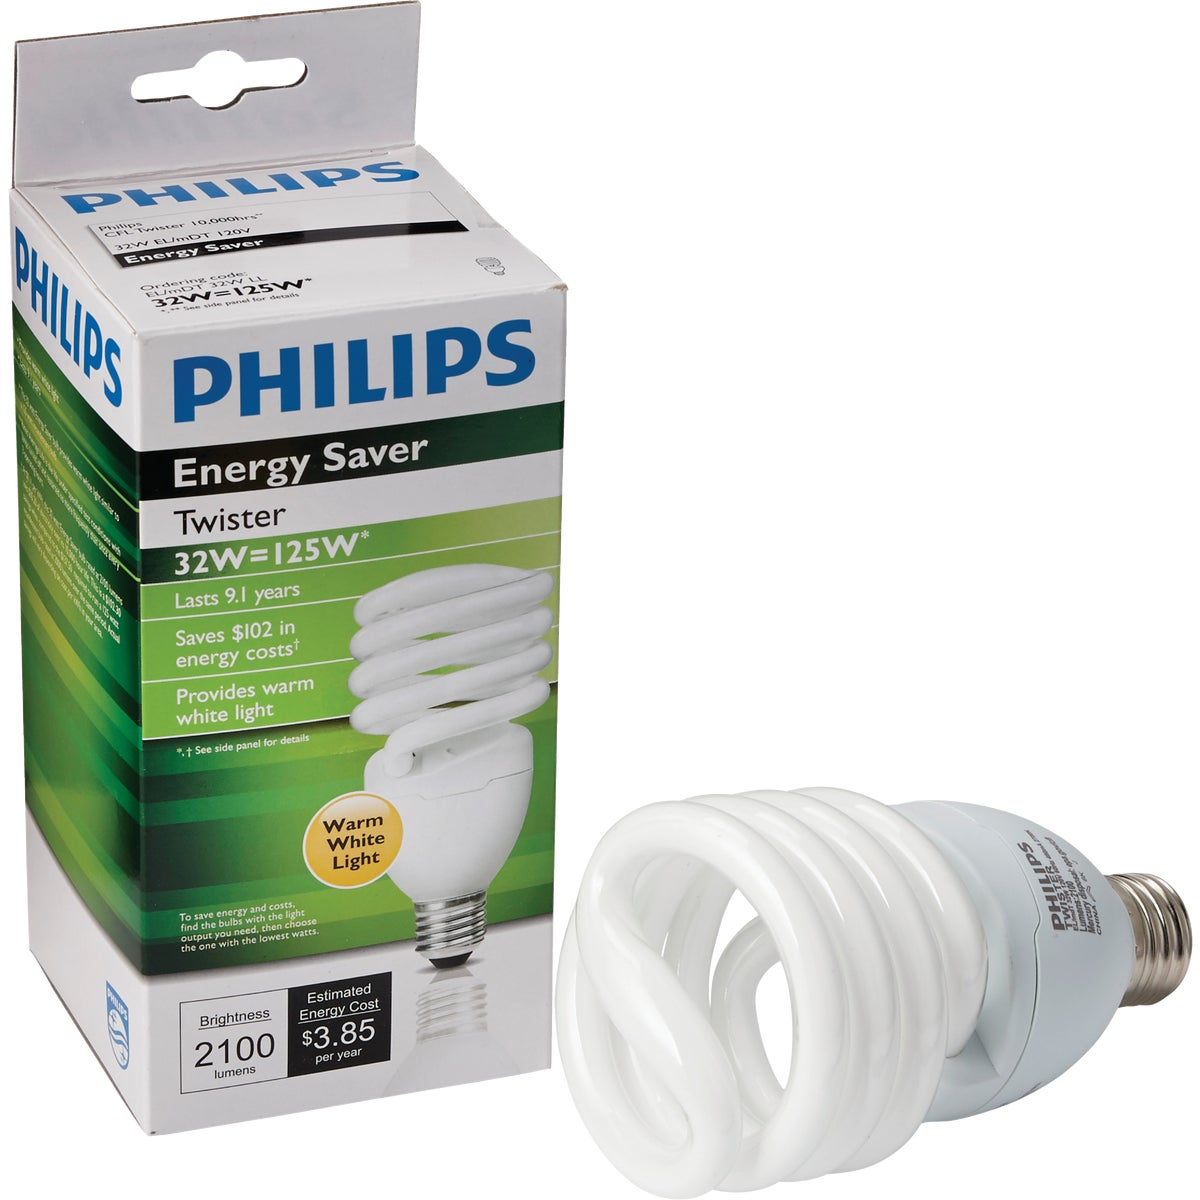 32W SPIRAL CFL BULB - 24684 by G E Lighting